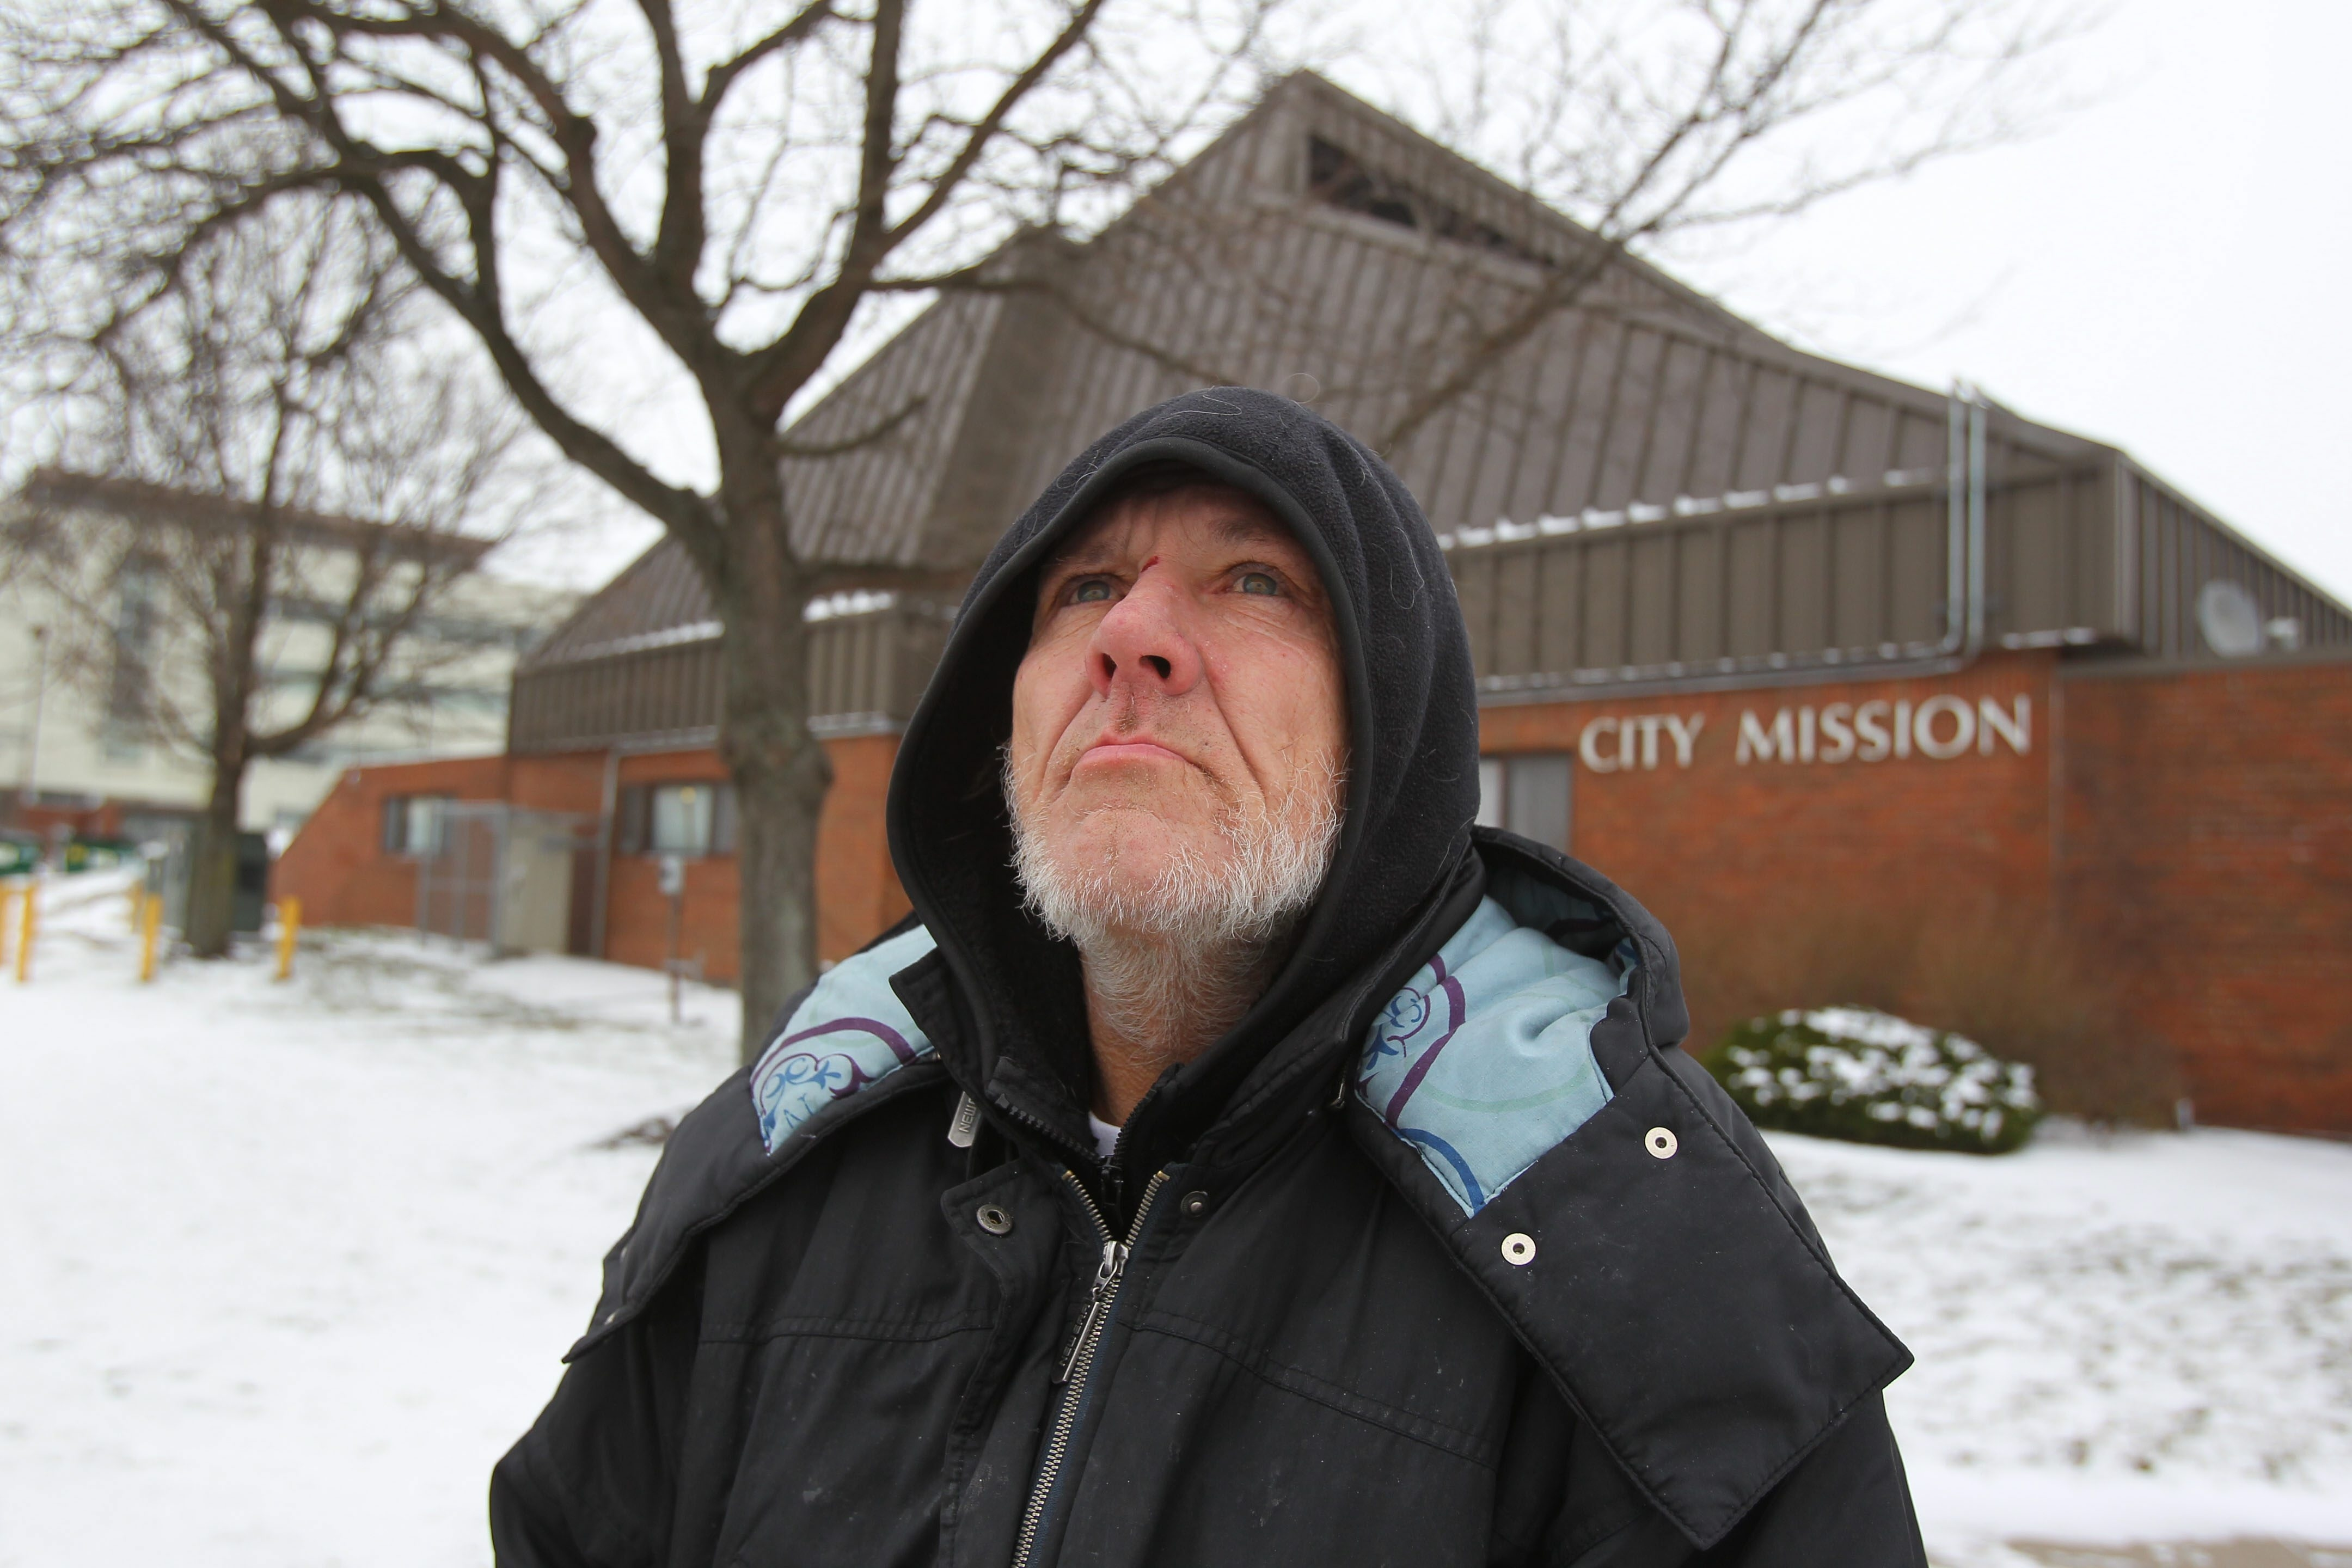 Niagara Falls native Kelly Foster stands in front of the City Misson, where he has stayed the last few nights because of the bitter cold temperatures. Foster said he has been homeless for about five years.